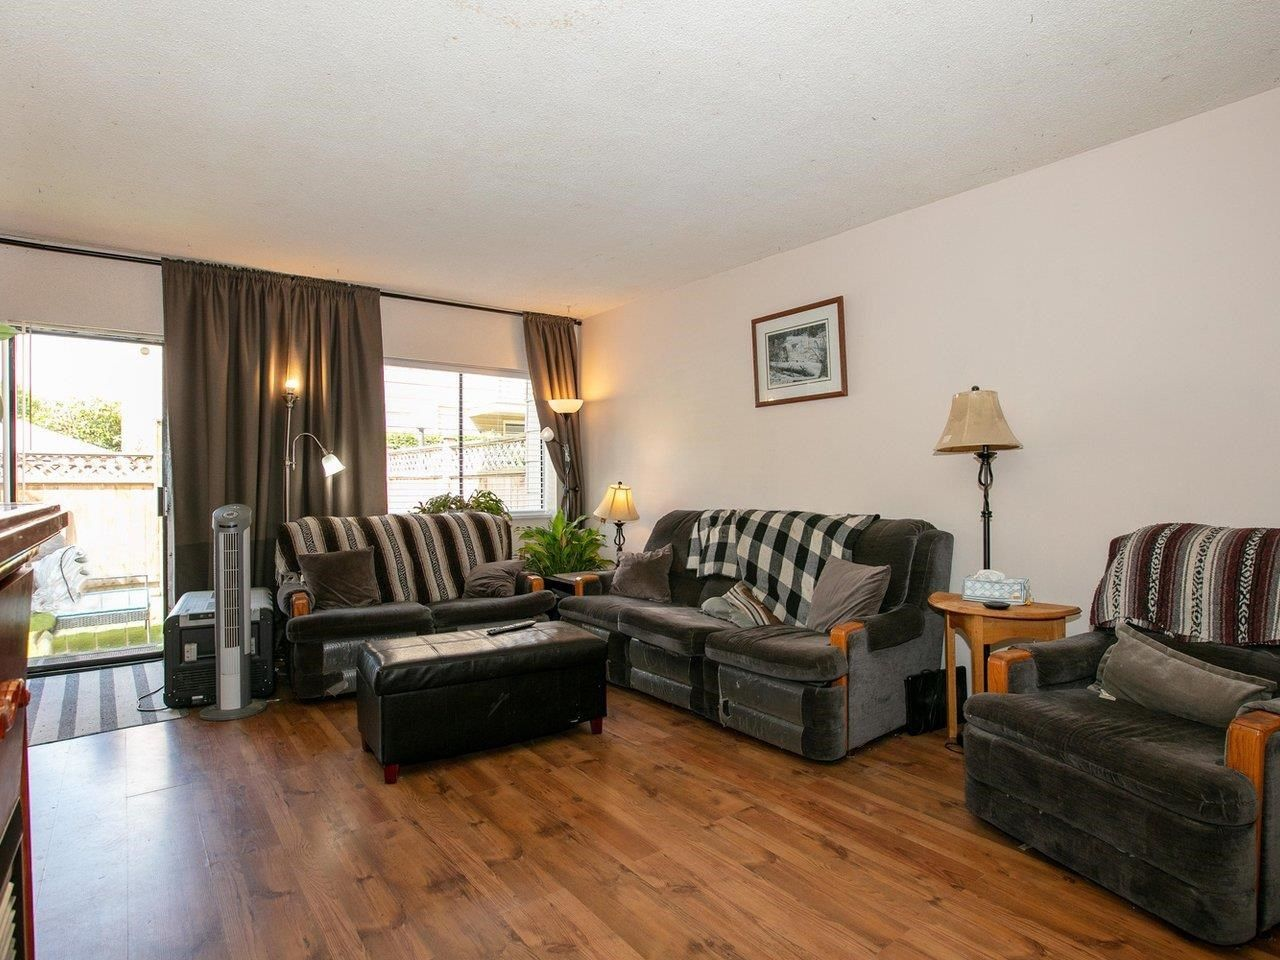 """Photo 3: Photos: 21 10585 153 Street in Surrey: Guildford Townhouse for sale in """"Guildford Mews"""" (North Surrey)  : MLS®# R2593242"""